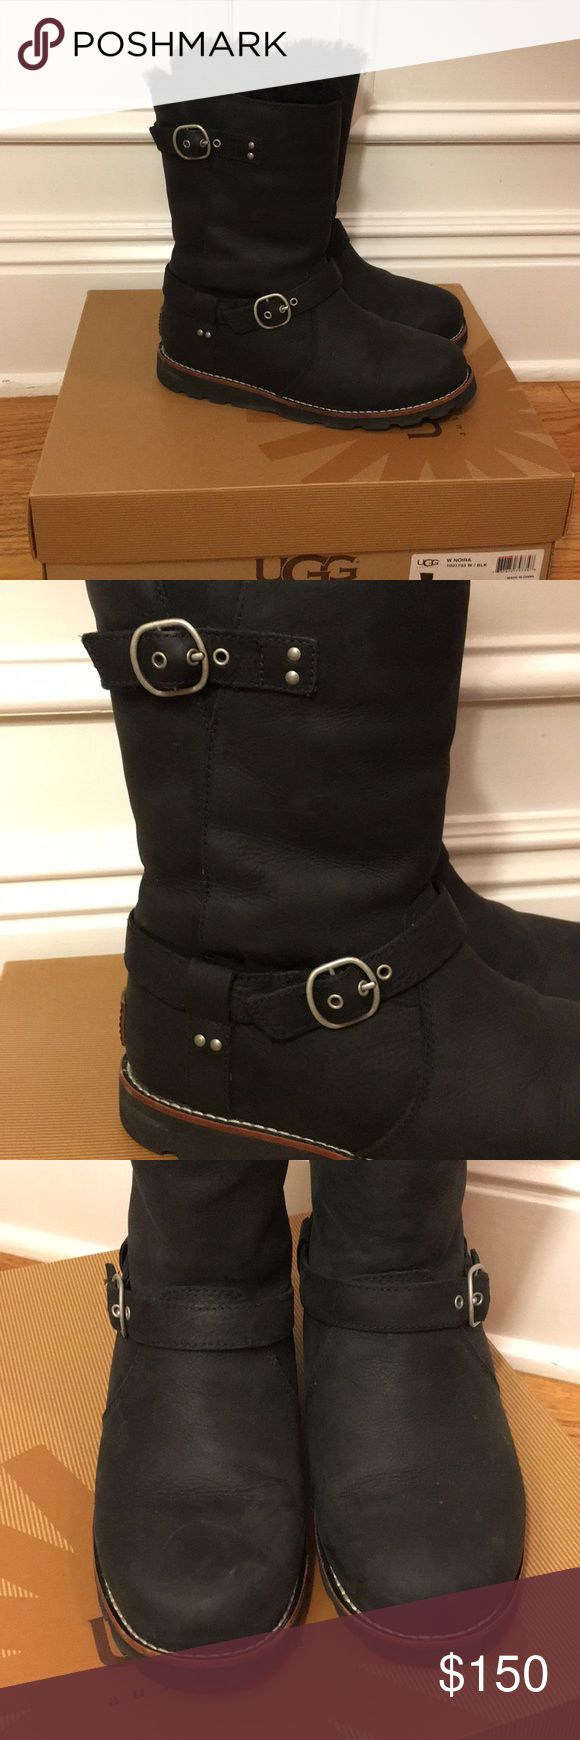 Ugg Black NOIRA Boots UGG black NOIRA women Boots! Worn only a couple times but in flawless condition! Practically new! Purchased at the Walking Co! Not damage! Make me an offer! Leather black boots with silver buckle UGG Shoes Winter & Rain Boots